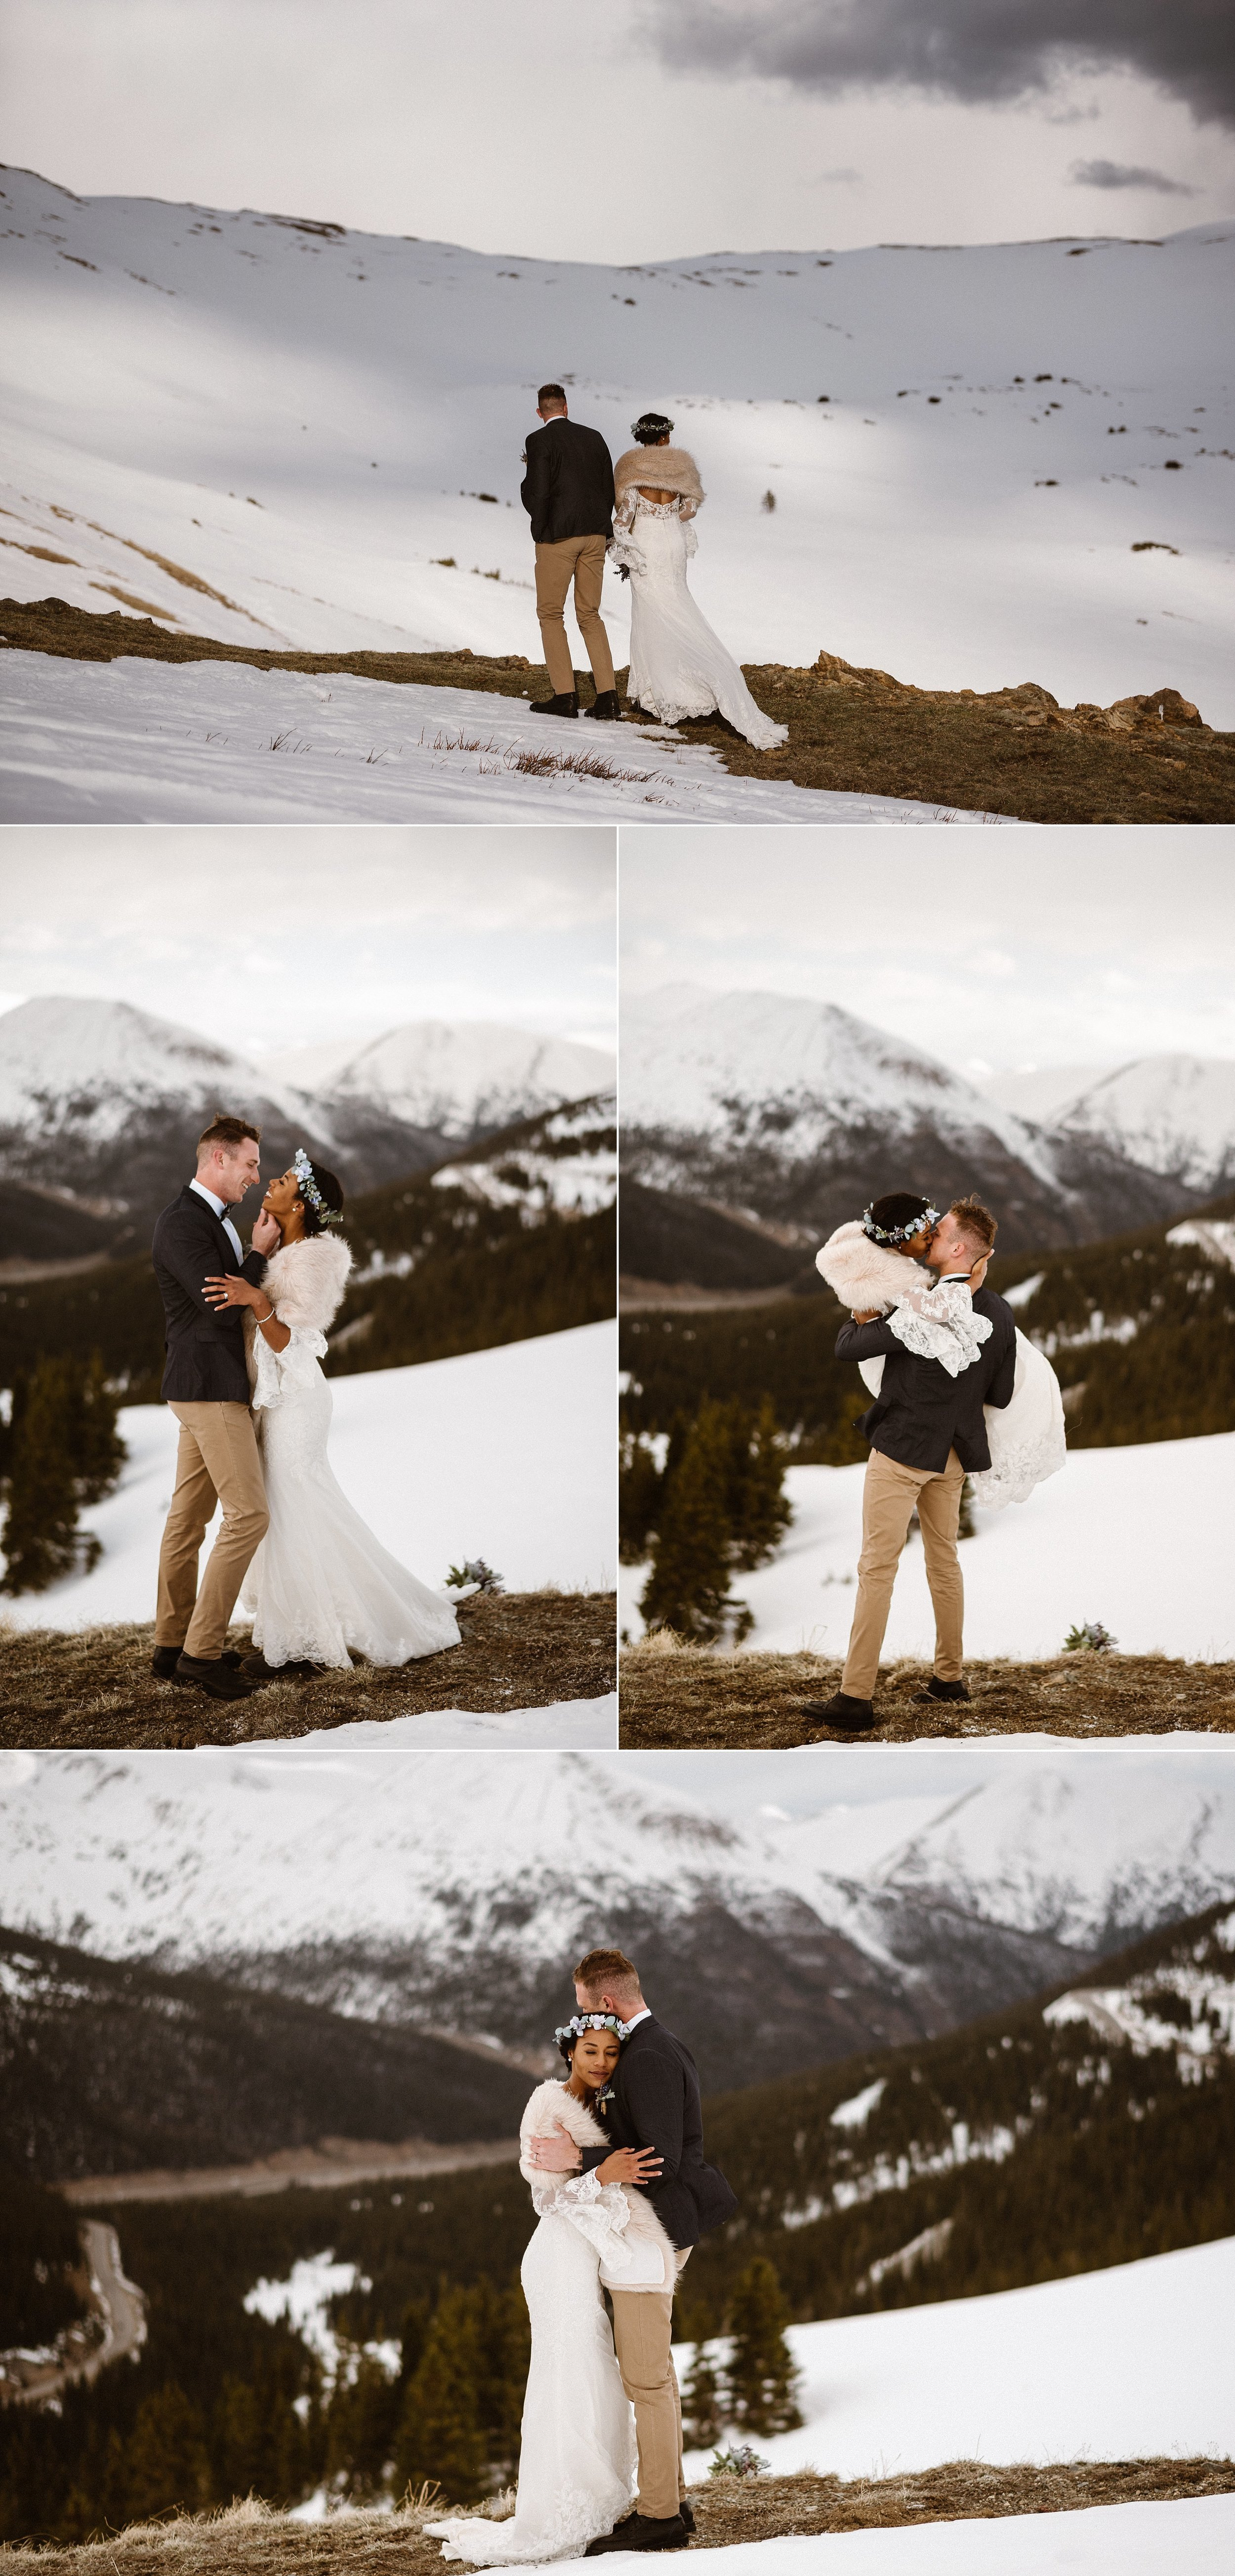 Bundling up in vintage fur Mikayla and Jared hiked up Loveland Pass into the snowy white hills to share a few moments alone just after their intimate elopement ceremony. Photos by adventure wedding photographer Maddie Mae.